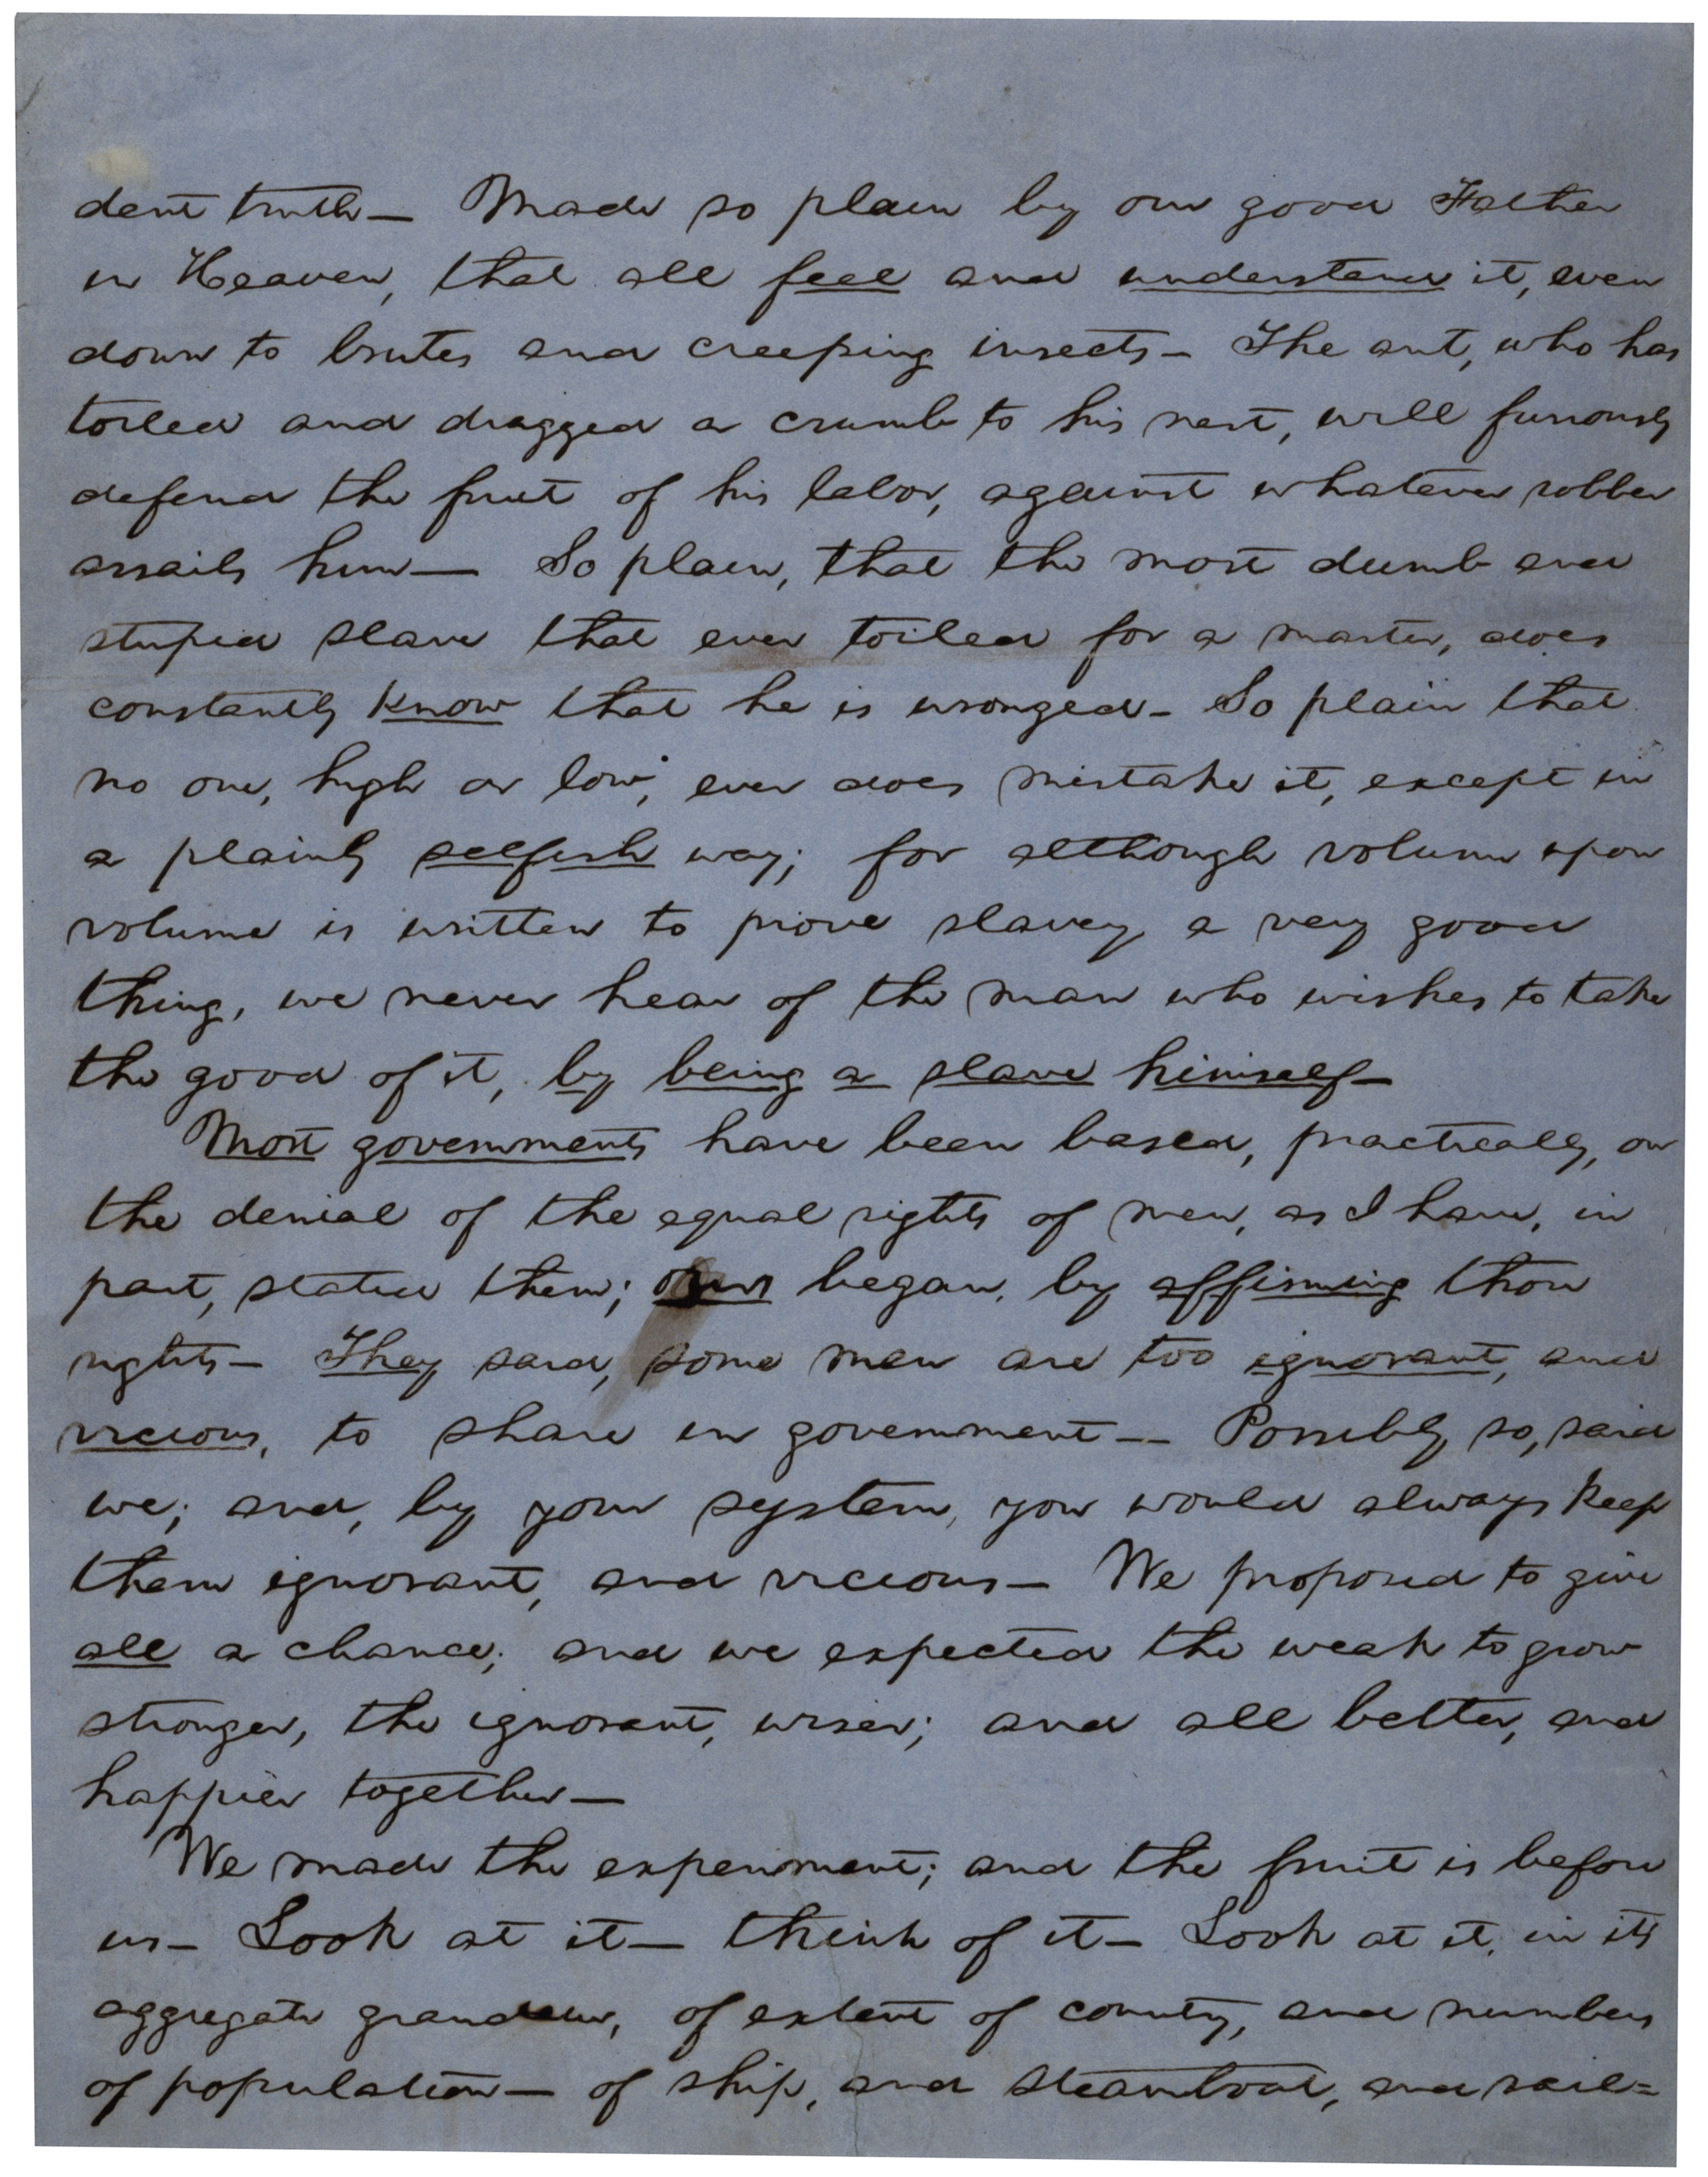 lincoln speech on slavery and the american dream 1858 the abraham lincoln speech fragment on slavery and the american government ca 185